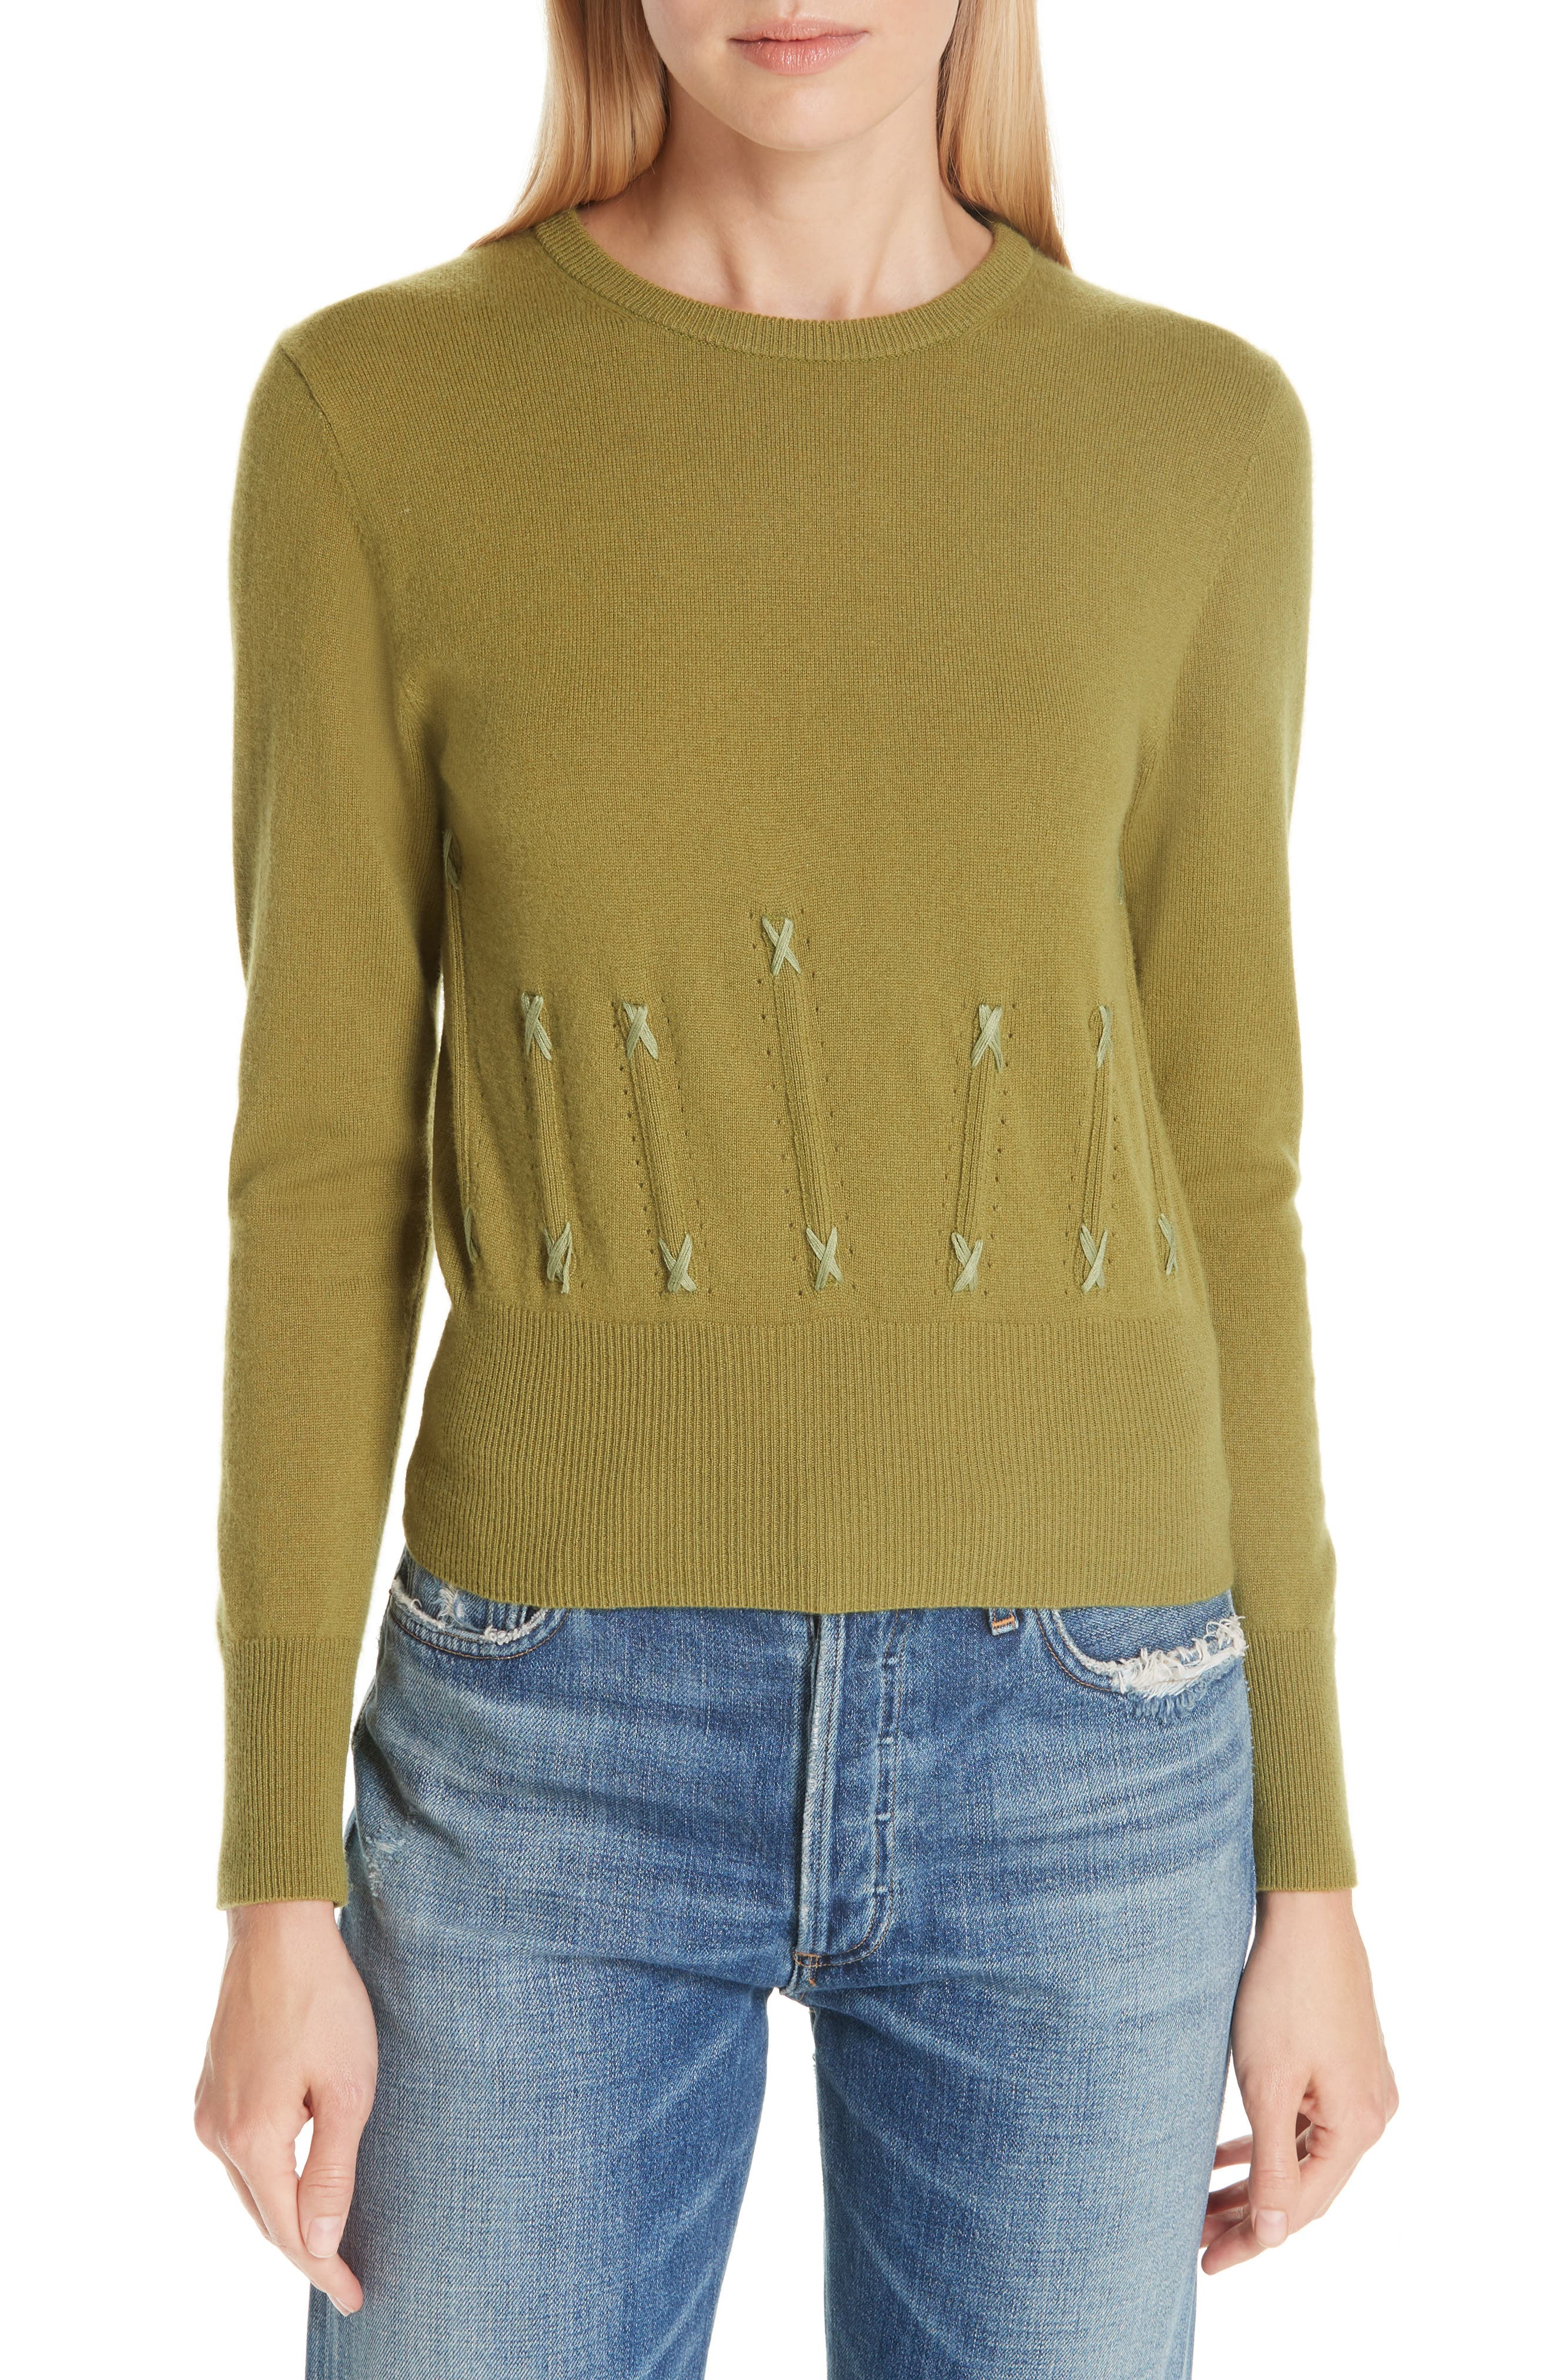 Cailyn Corset Knit Cashmere Sweater,                             Main thumbnail 1, color,                             GREEN